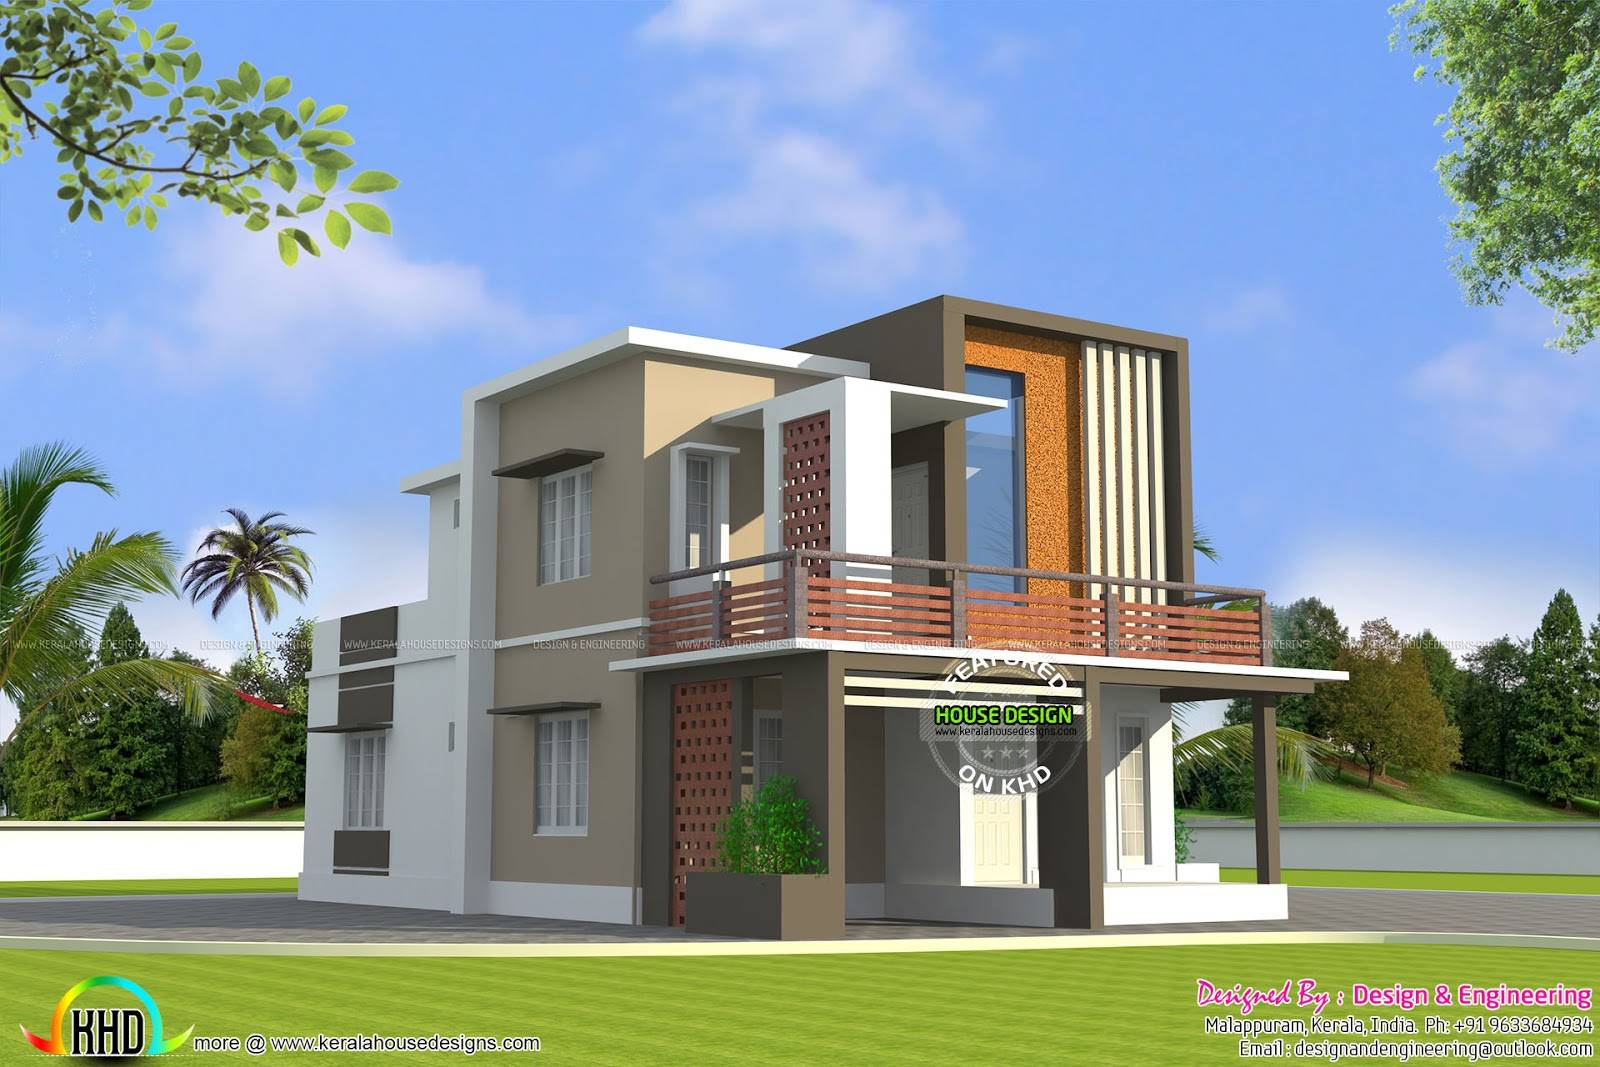 Designs houses outlook house design Low cost home design in india